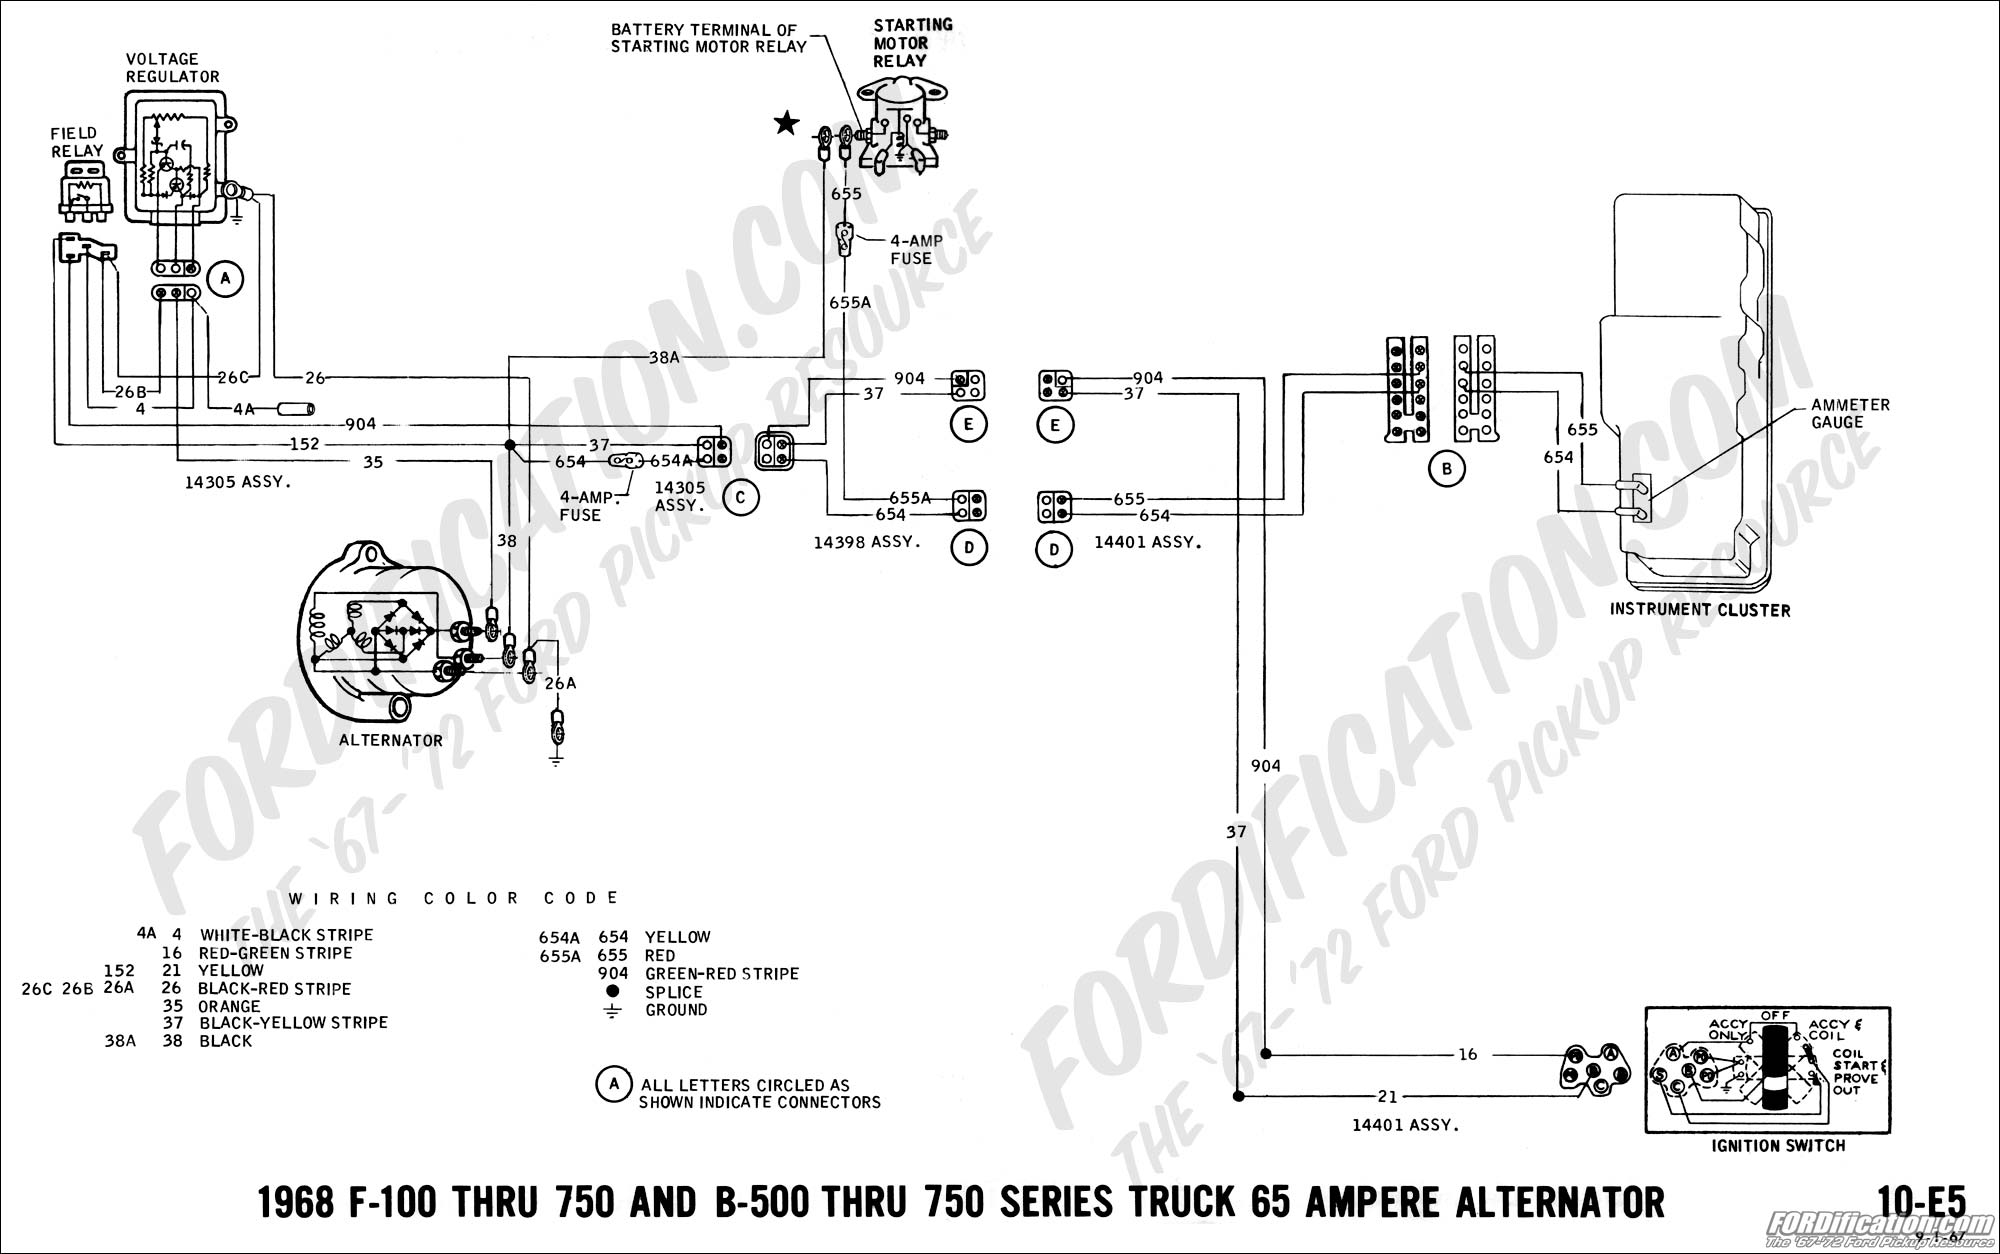 68 07 ford truck technical drawings and schematics section h wiring 1968 mustang alternator wiring diagram at soozxer.org